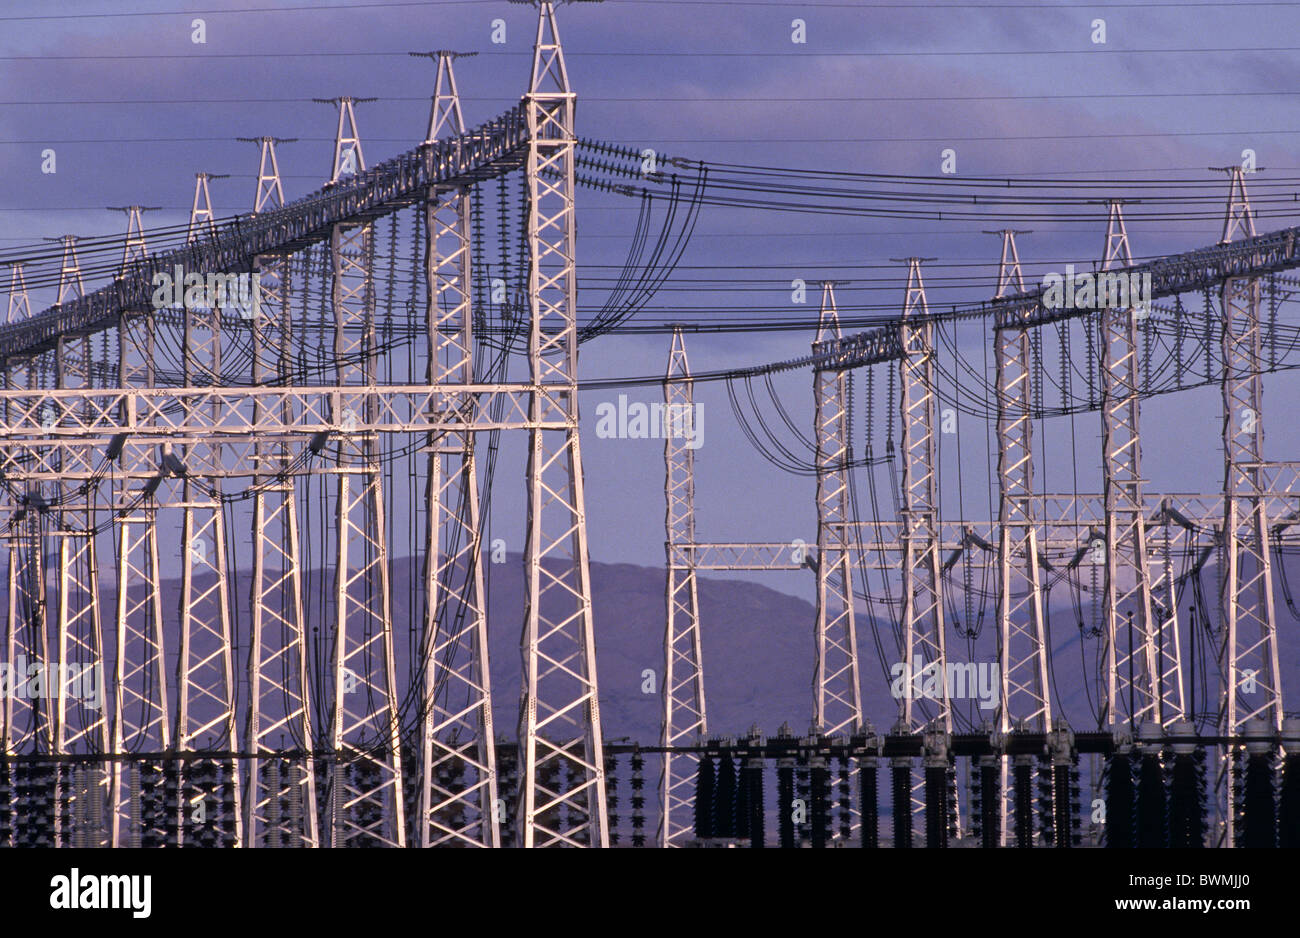 Hydro-electric grid, New Zealand - Stock Image